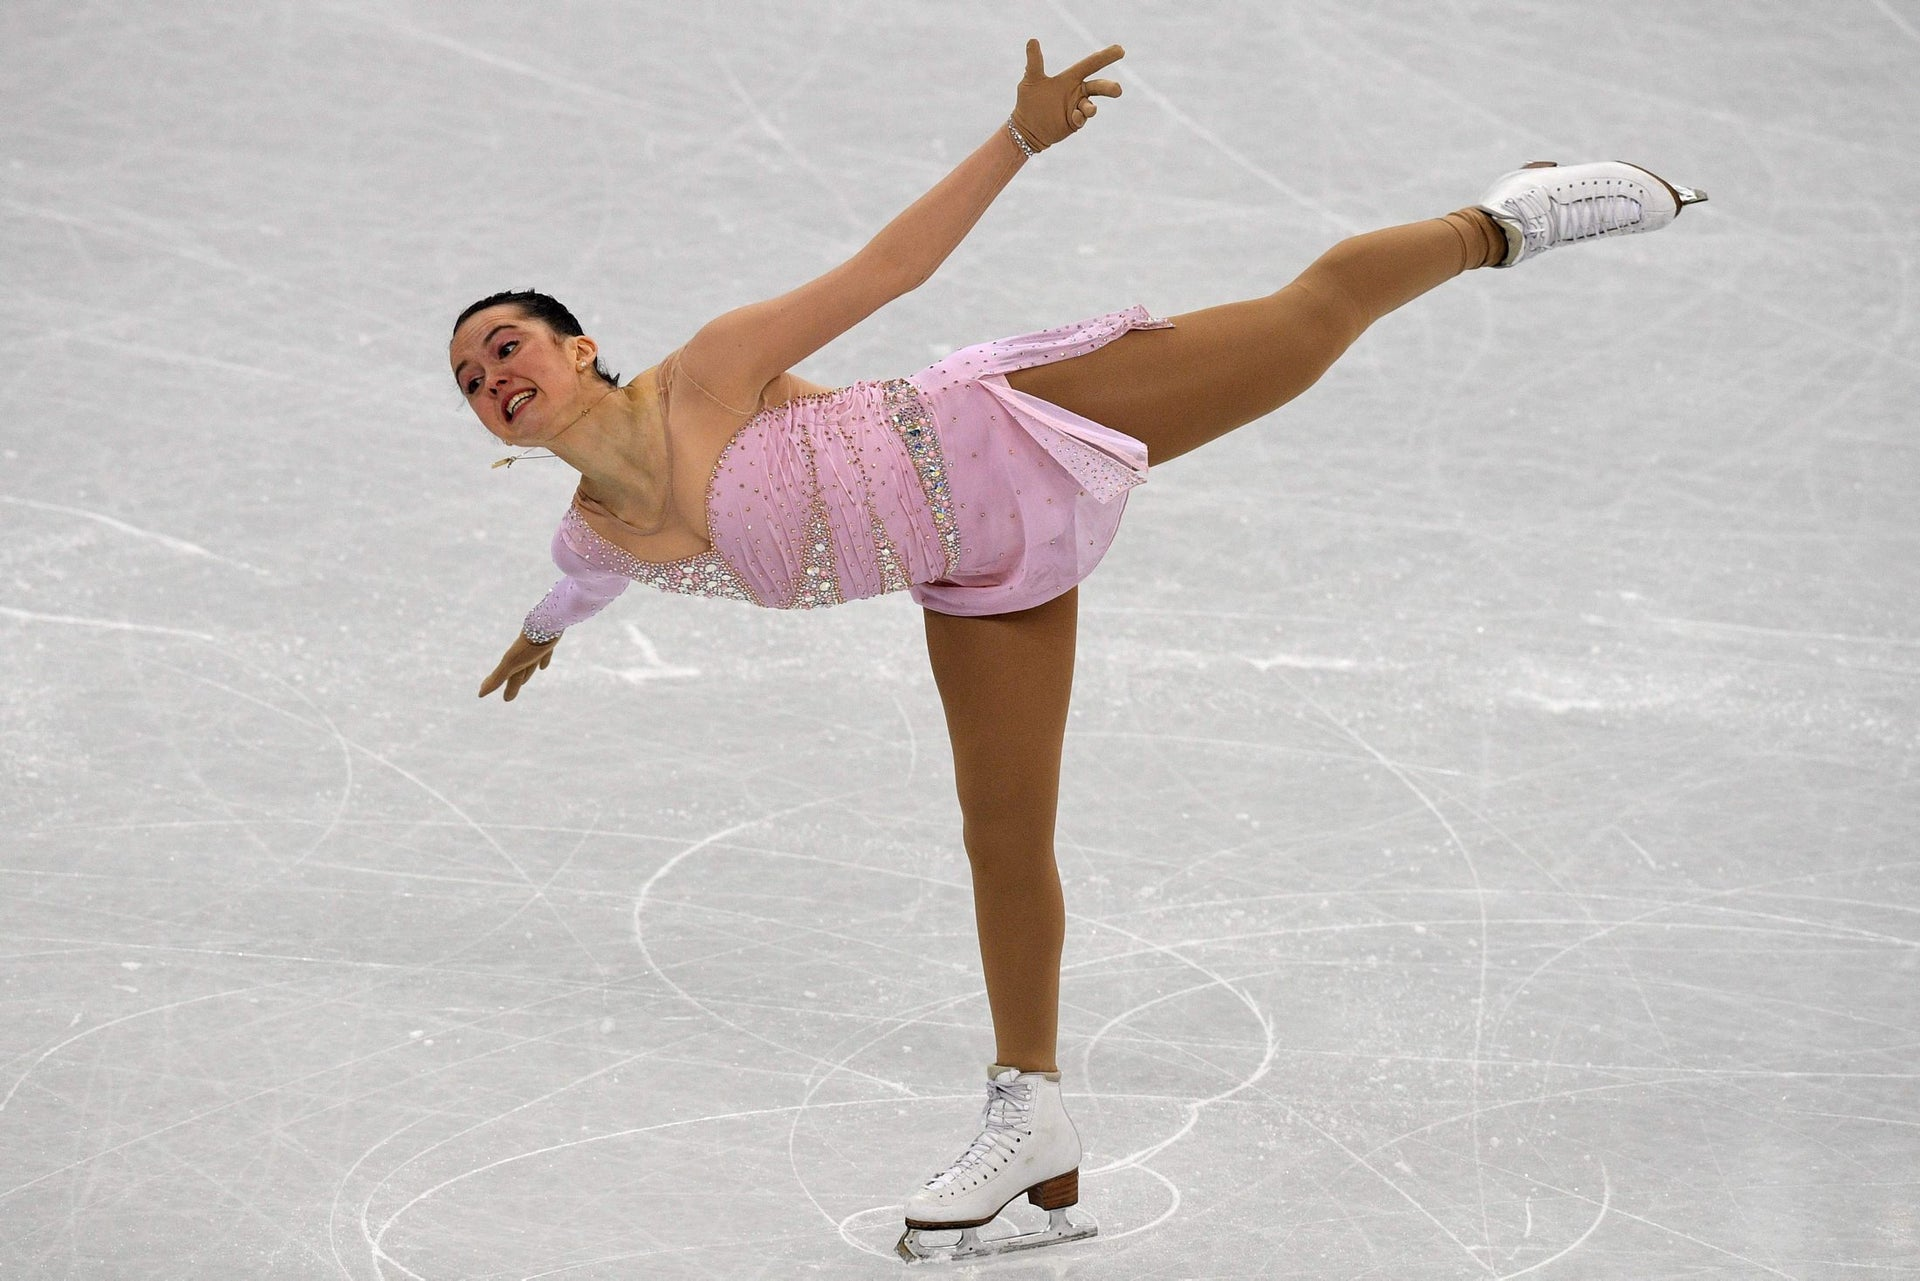 Israel's Aimee Buchanan competes in the figure skating team event women's single skating short program during the Pyeongchang 2018 Winter Olympic Games at the Gangneung Ice Arena in Gangneung on February 11, 2018.